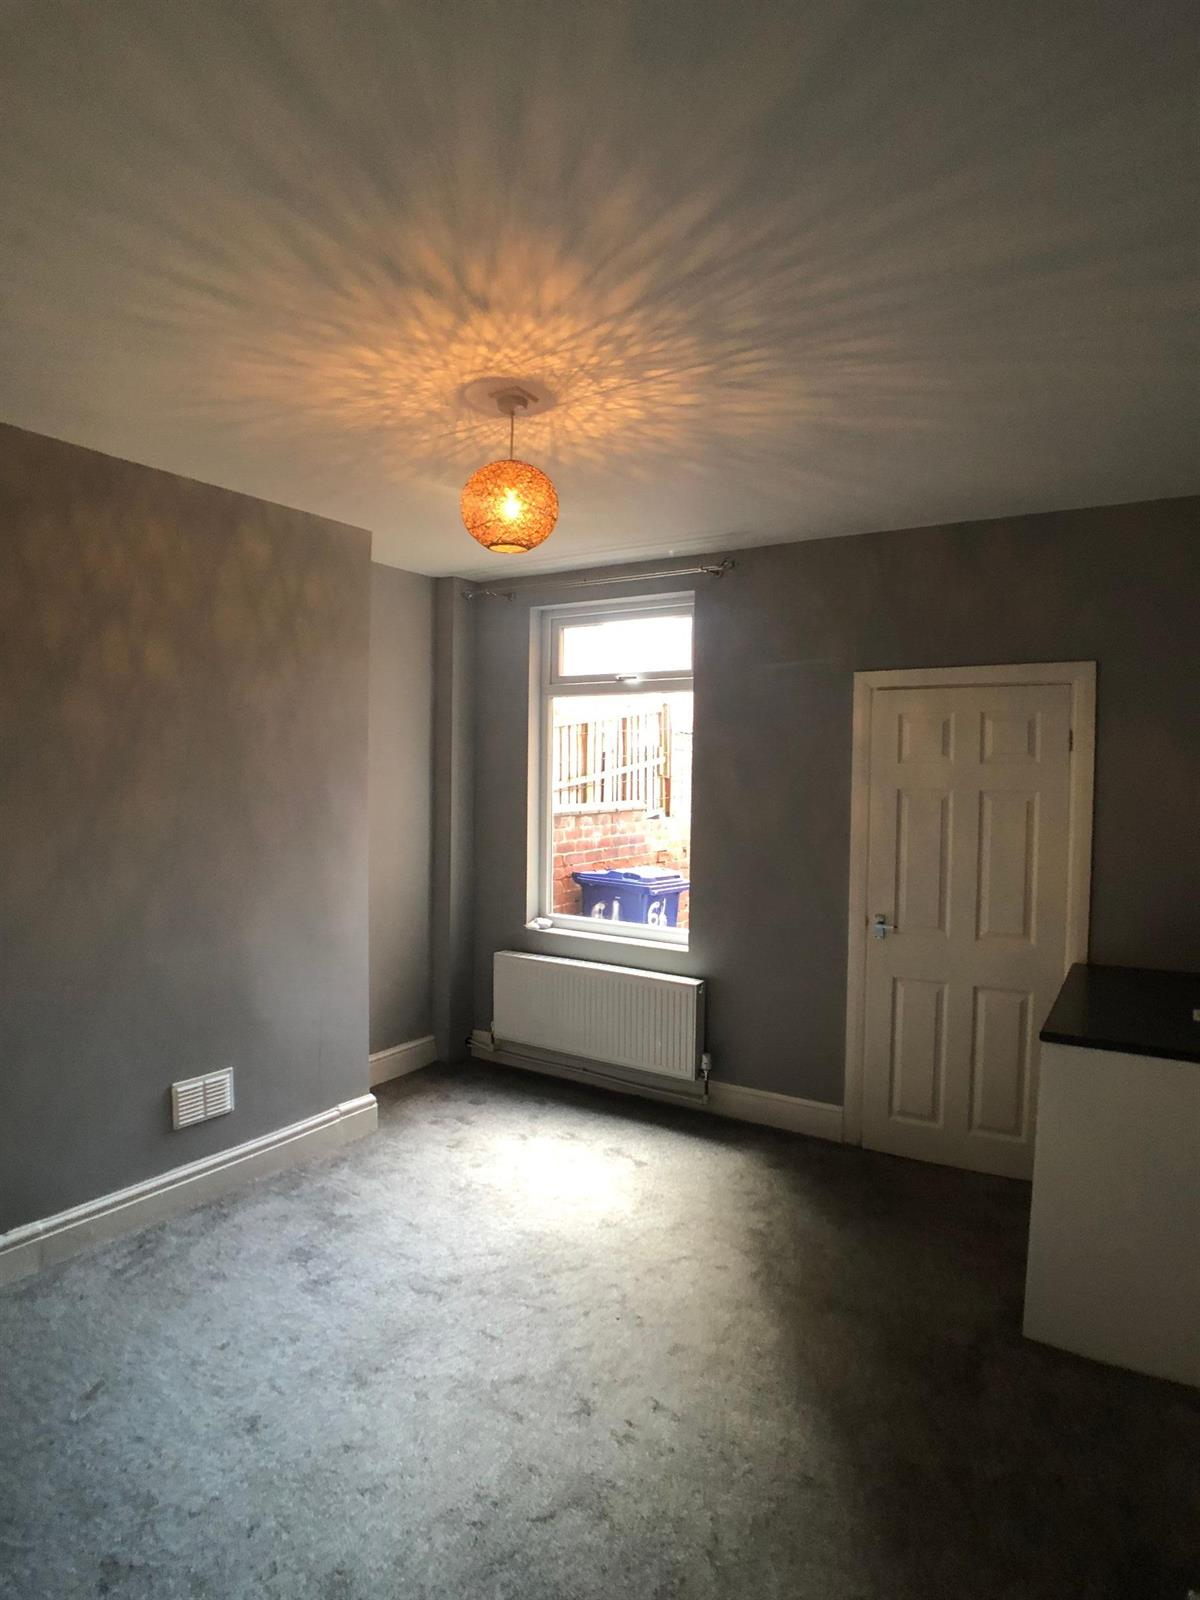 To Let - 2 bedroom Terraced house, Alexandra Road, Doncaster - £550 pcm